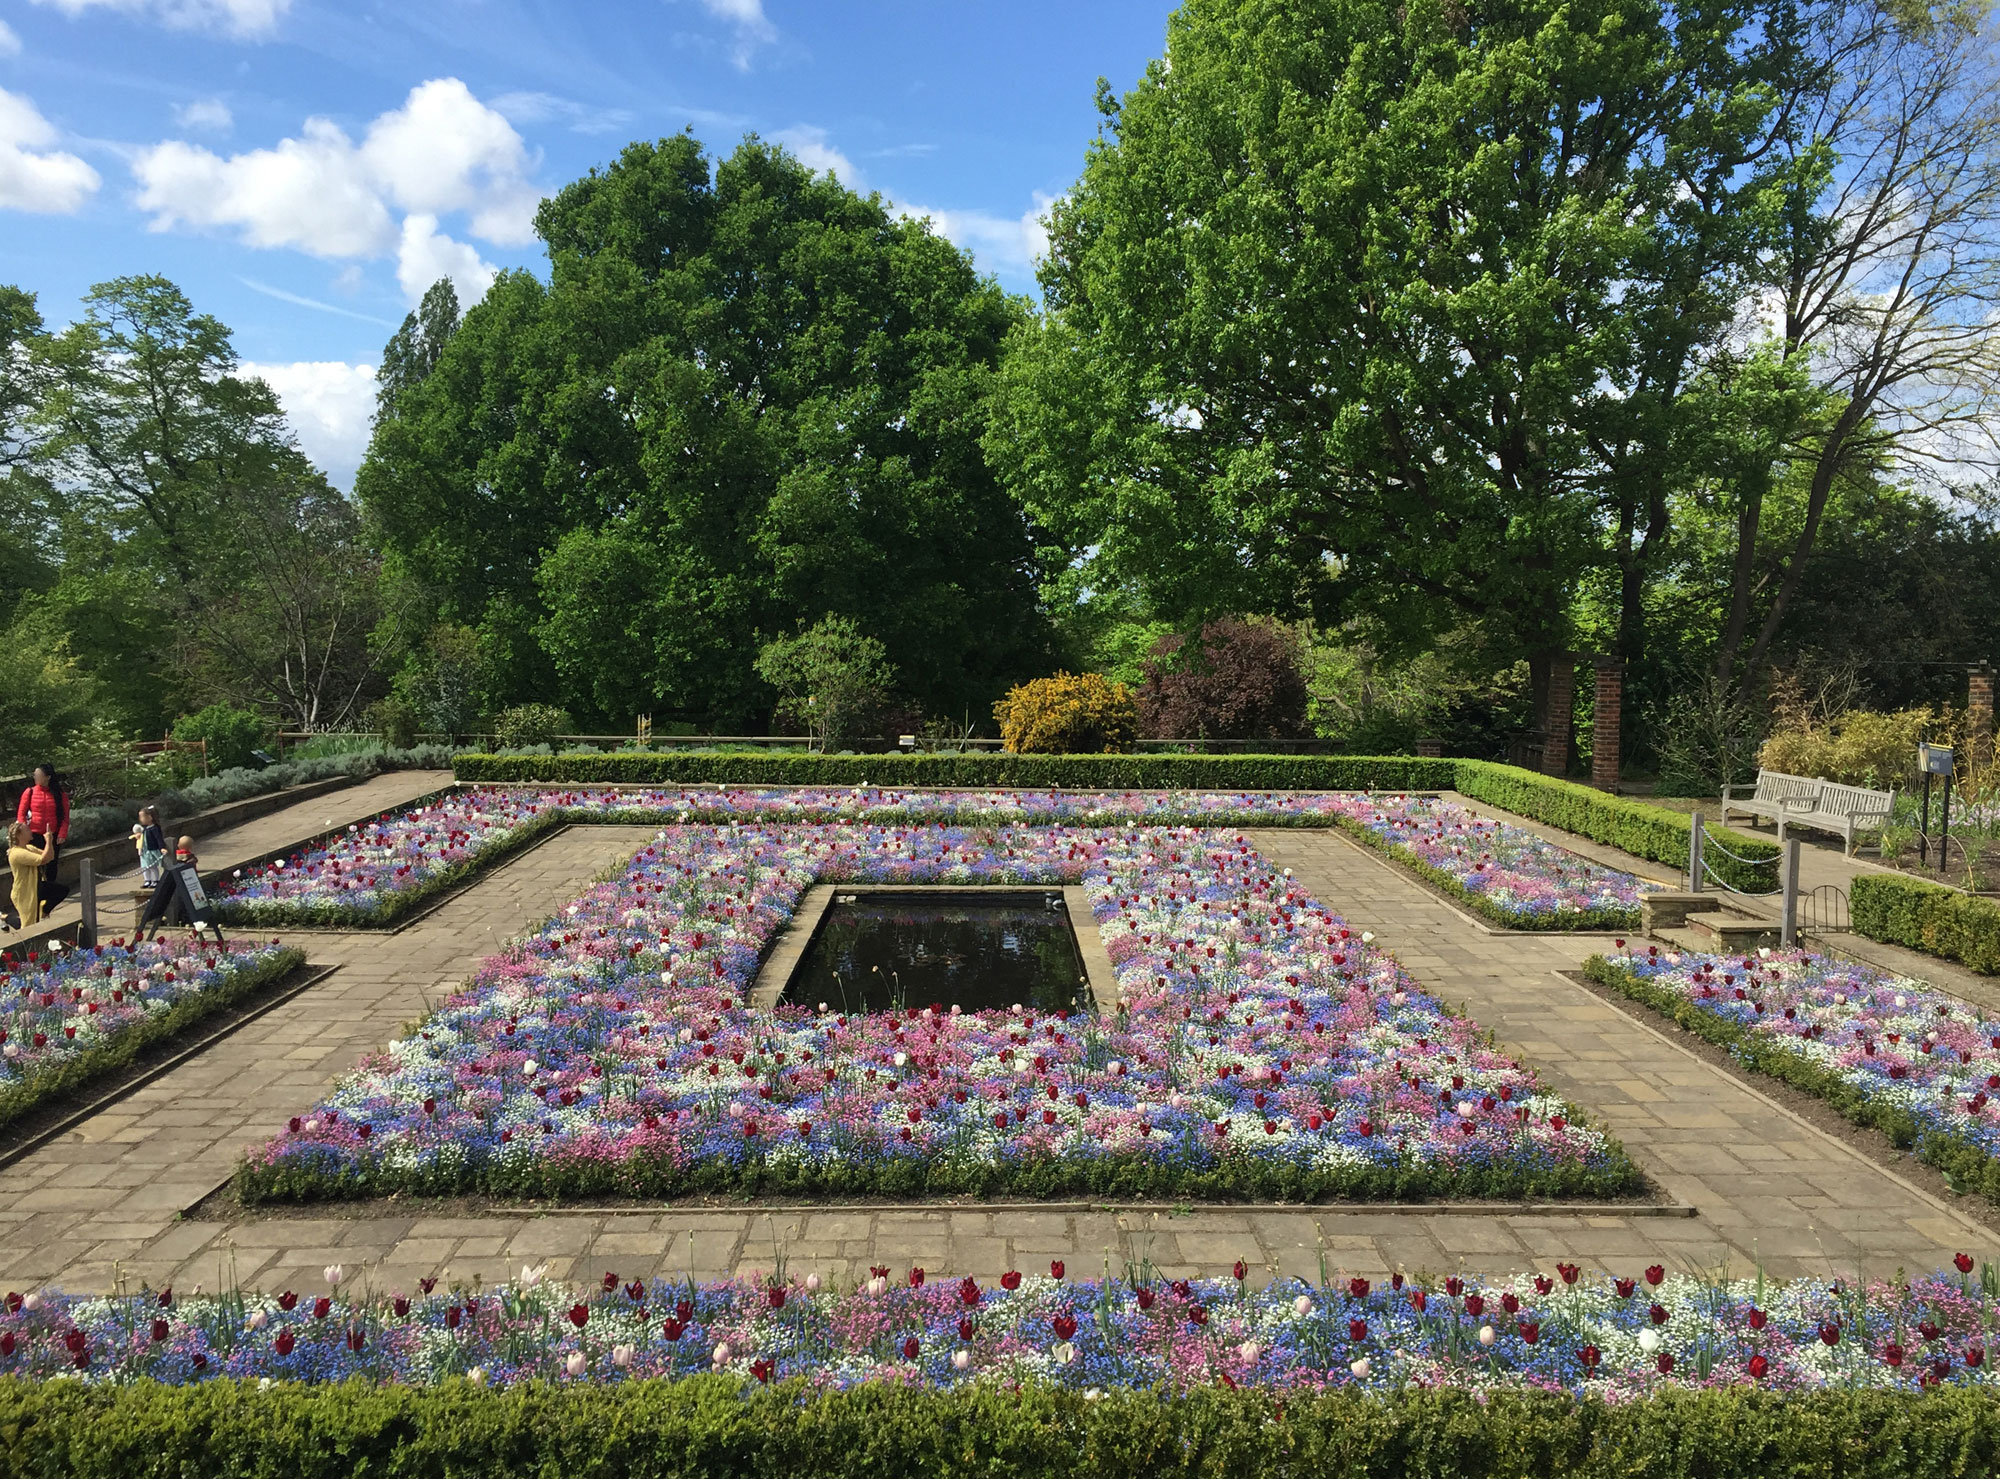 A square pond sits at the centre of a square flower bed with a square path around it and more flower beds around that. The flower beds are full of colourful flowers in blues, pinks and whites. The area is lined with trees and the sky is blue.